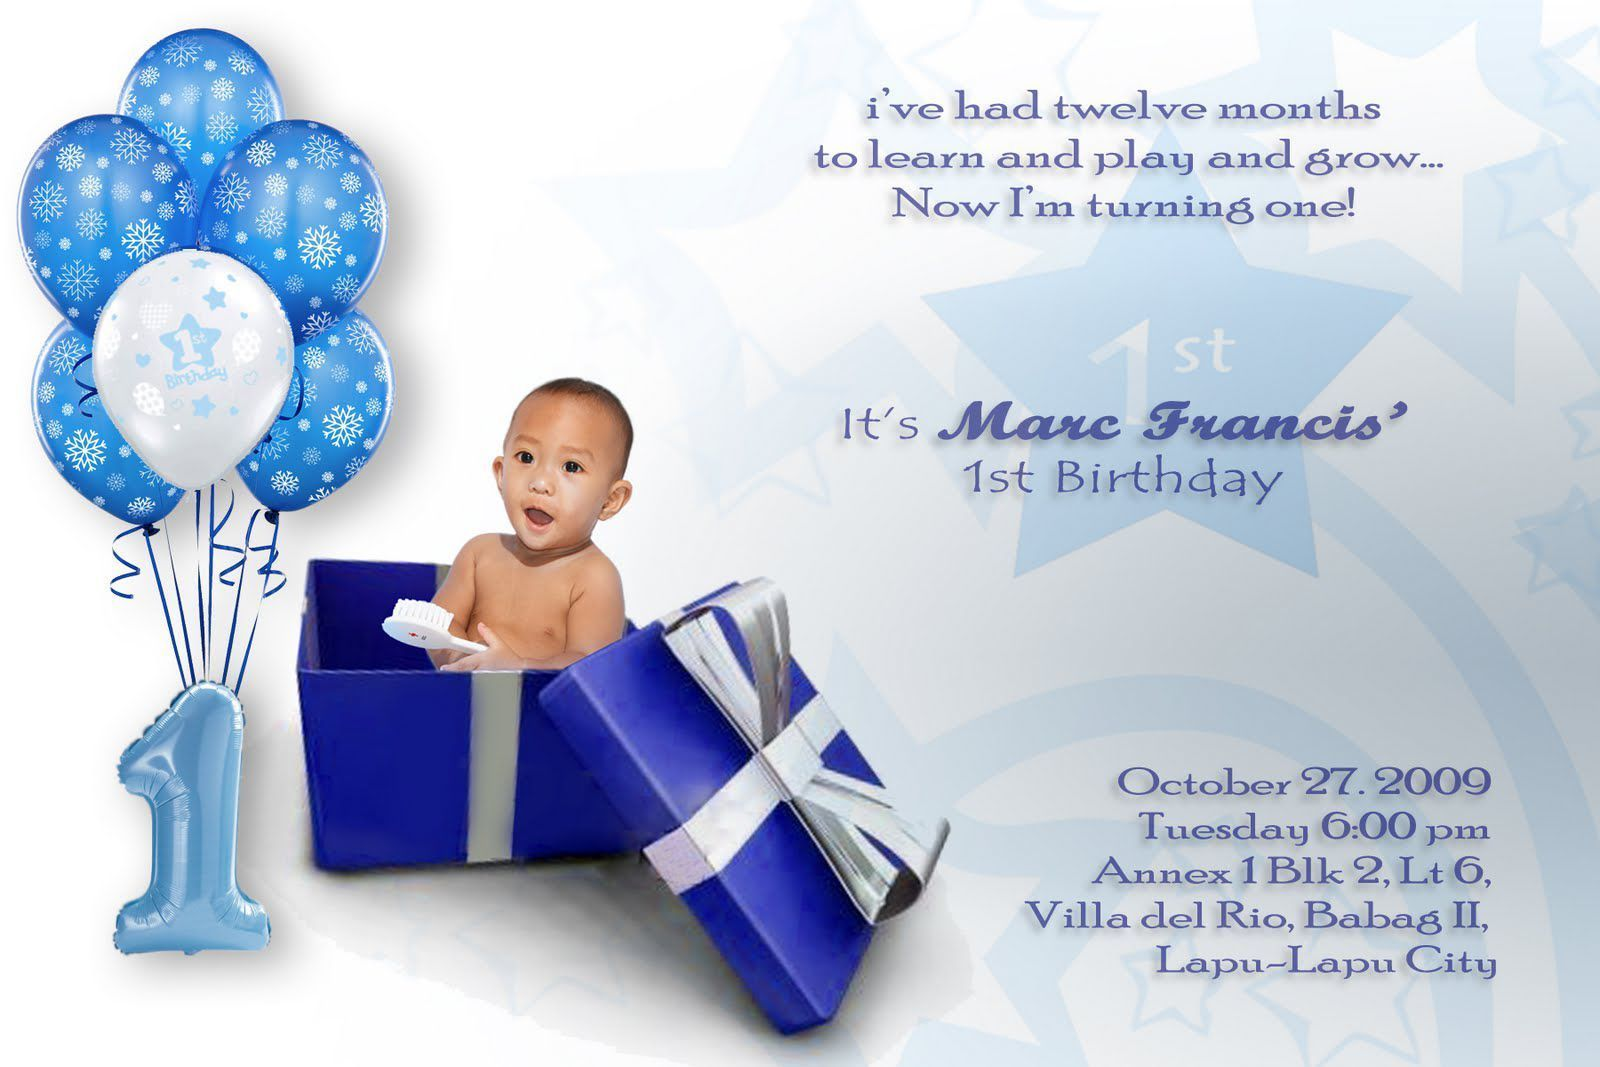 birthday invitation : online birthday invitations - Free Invitation ...